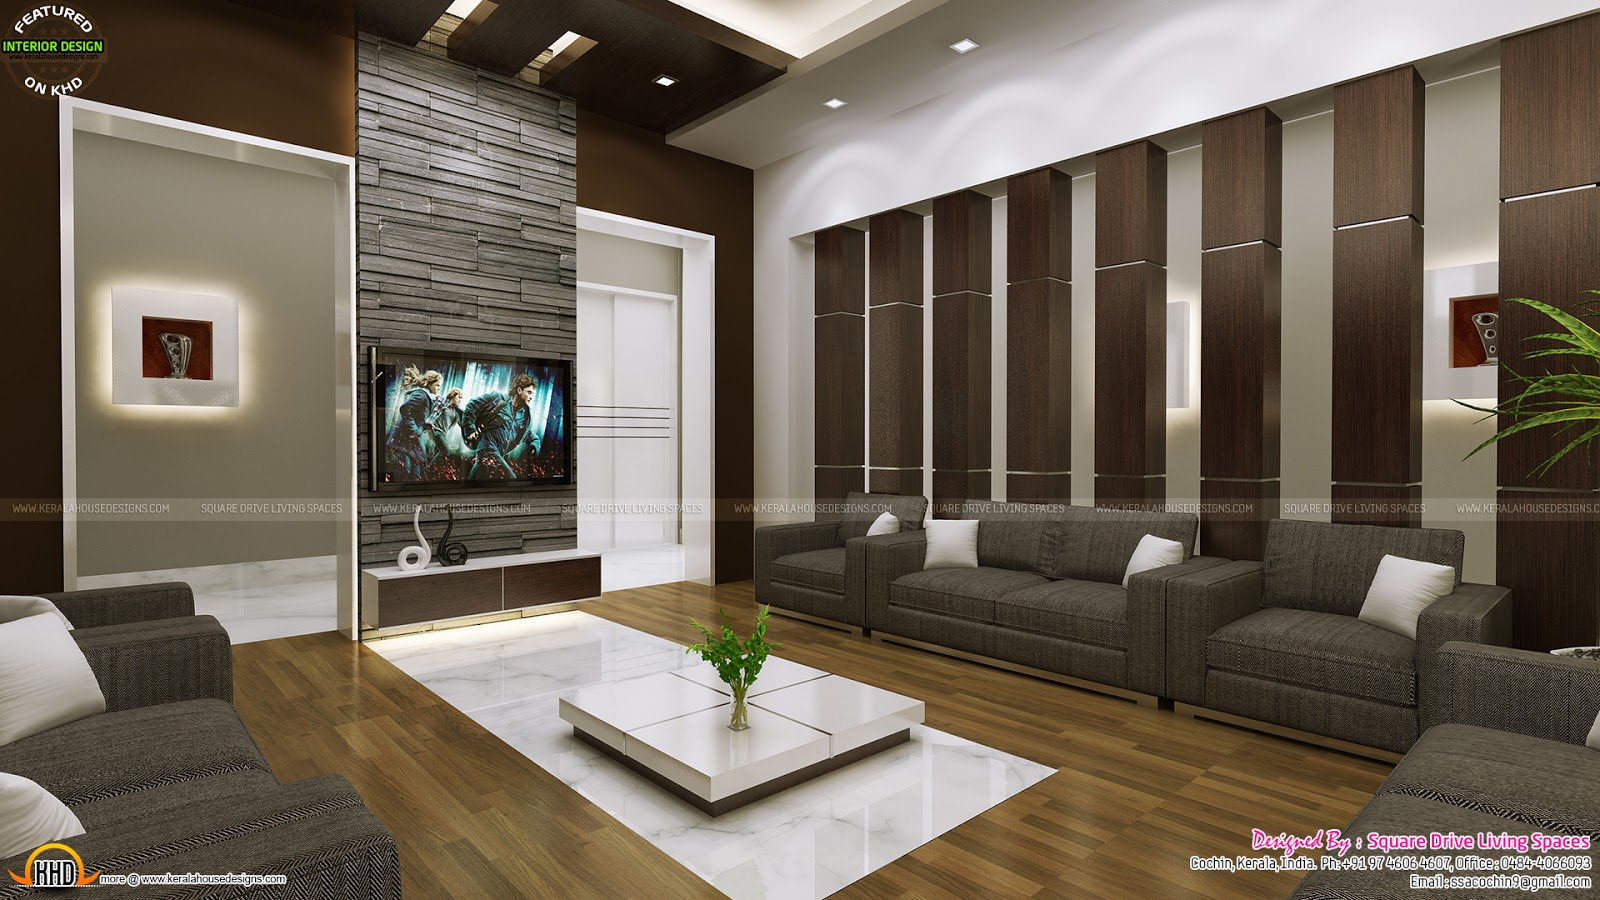 Attractive home interior ideas kerala home design and for Indoor design home